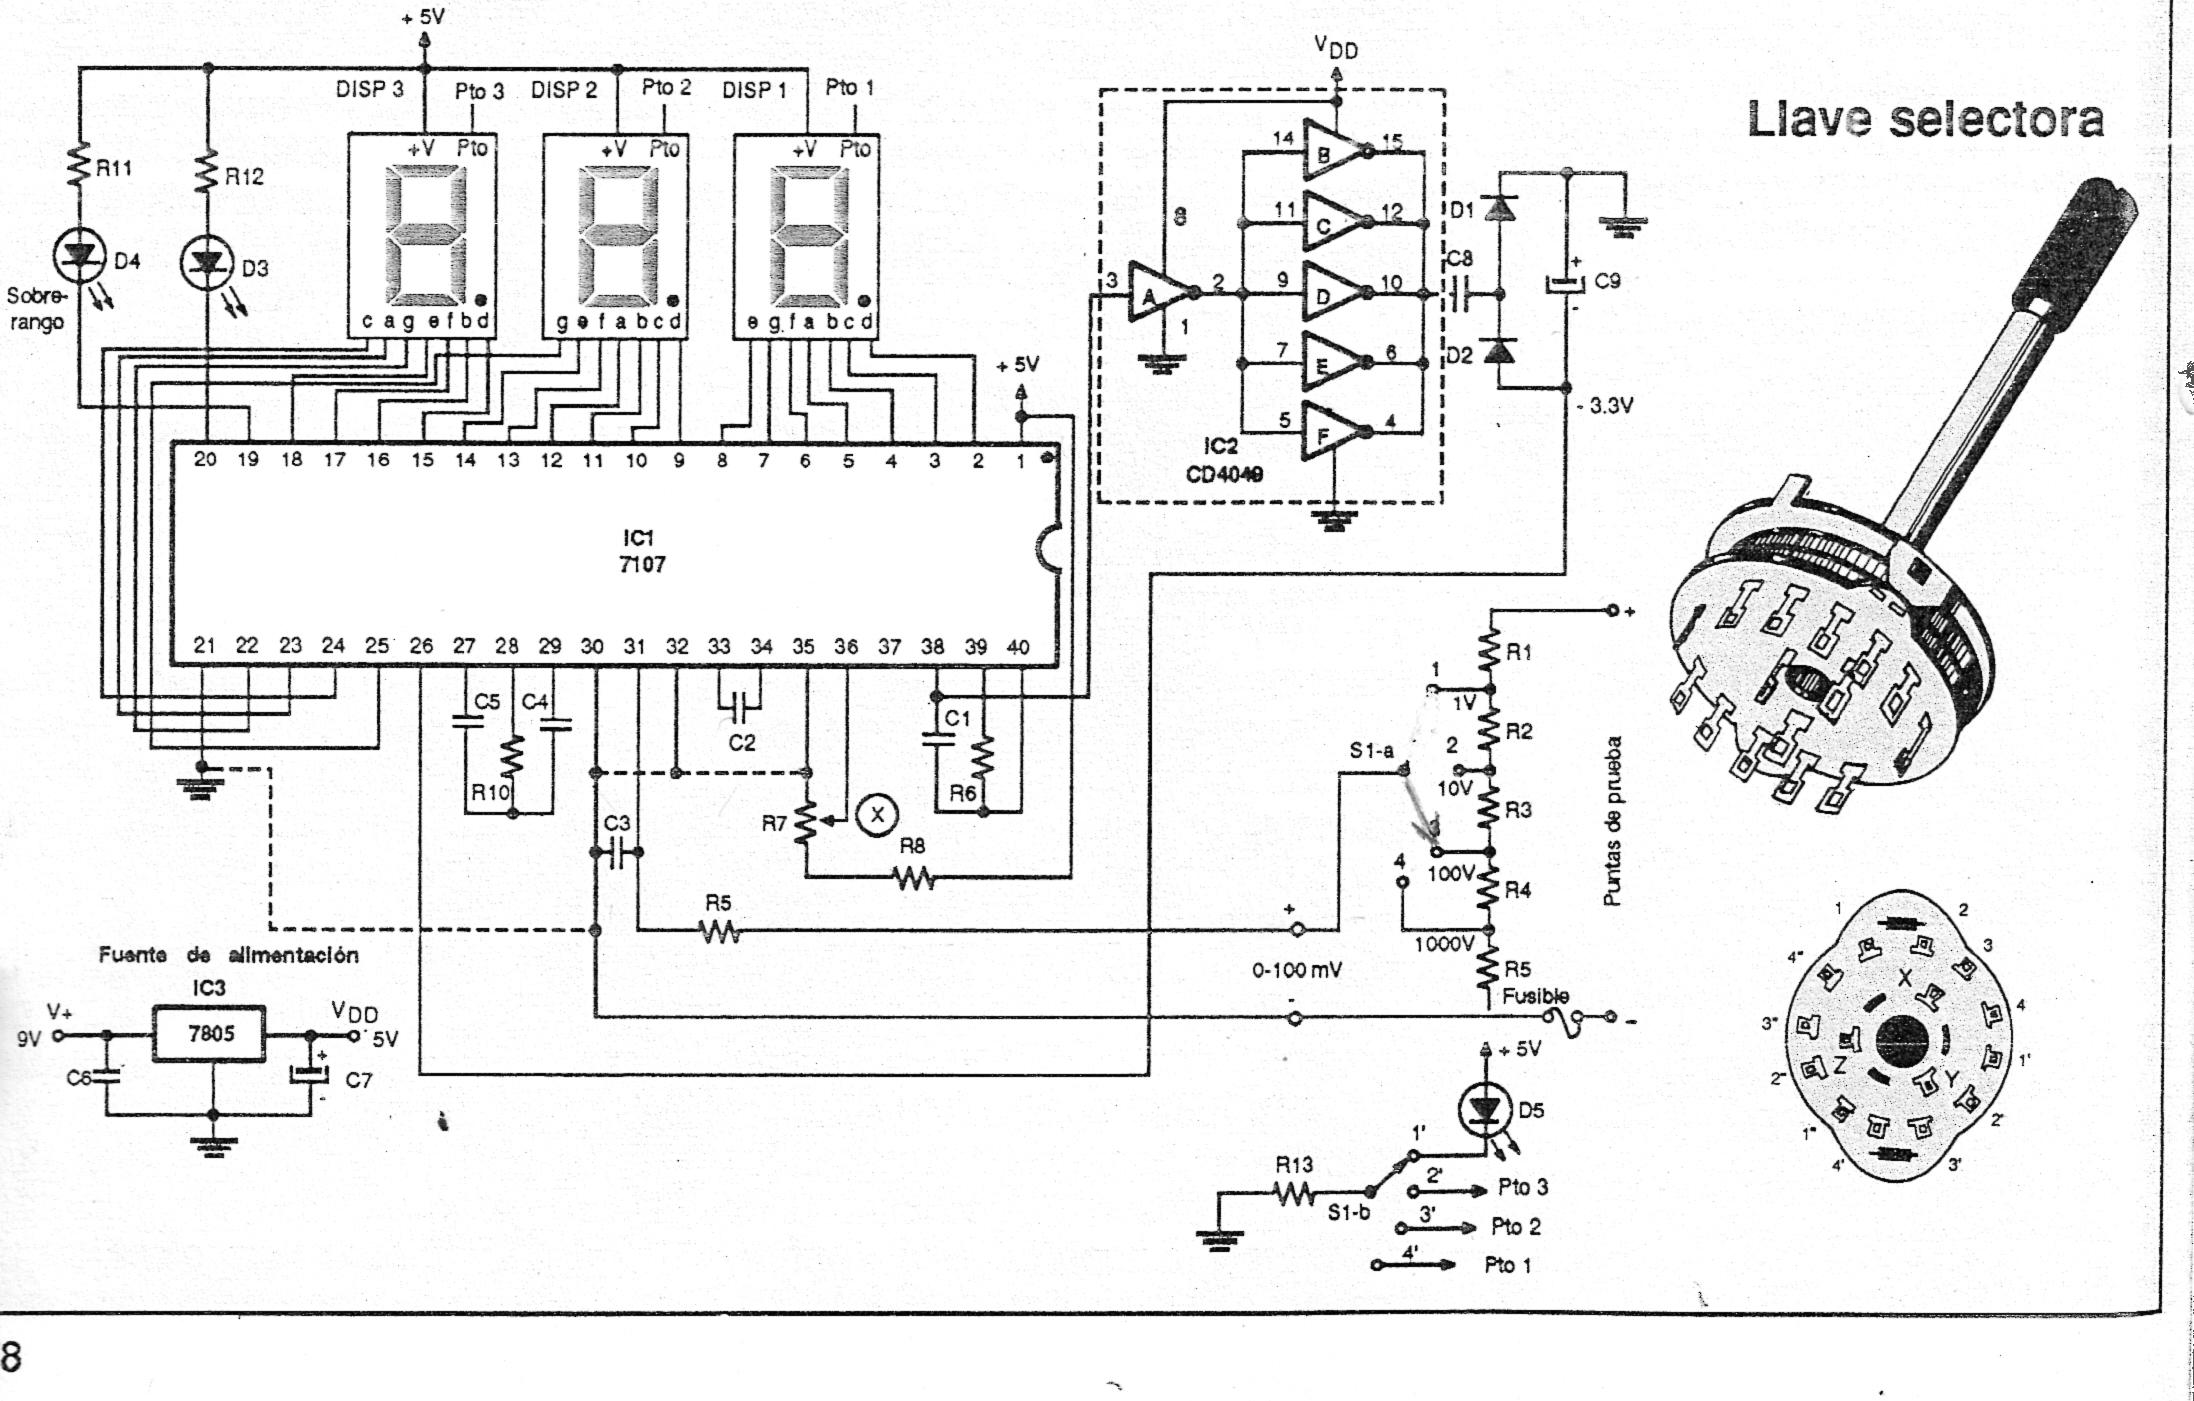 Popular Circuits Page 208 Circuit Schematics Wiring Diagram Schema Electronic Projects Segment Led Using L7107 Cut Off Low